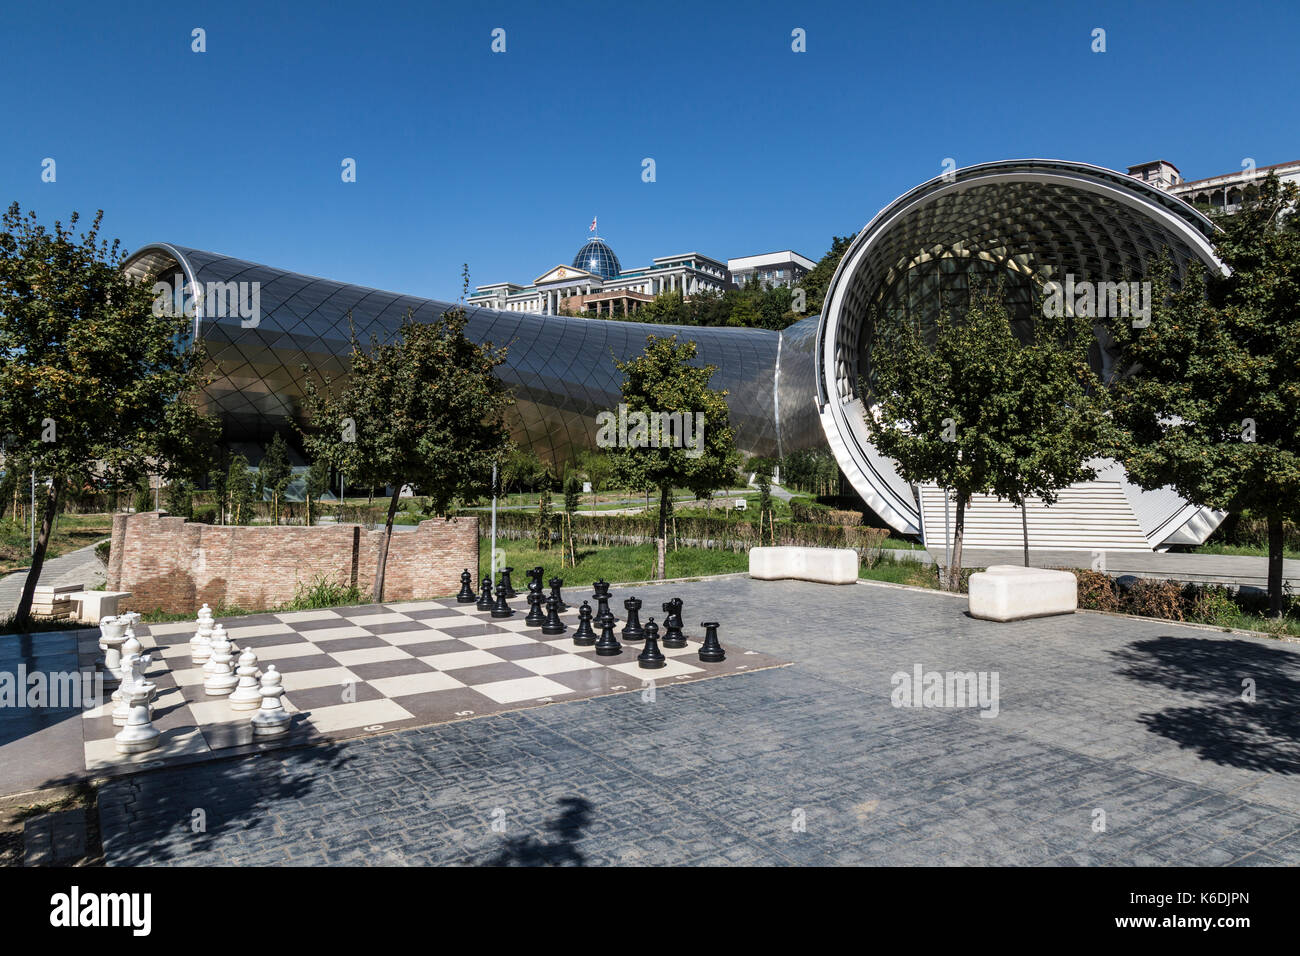 Entrance to the Cultural centre in the middle of Tbilisi in Georgia. Designed by the Rome based architects Fuksas. - Stock Image